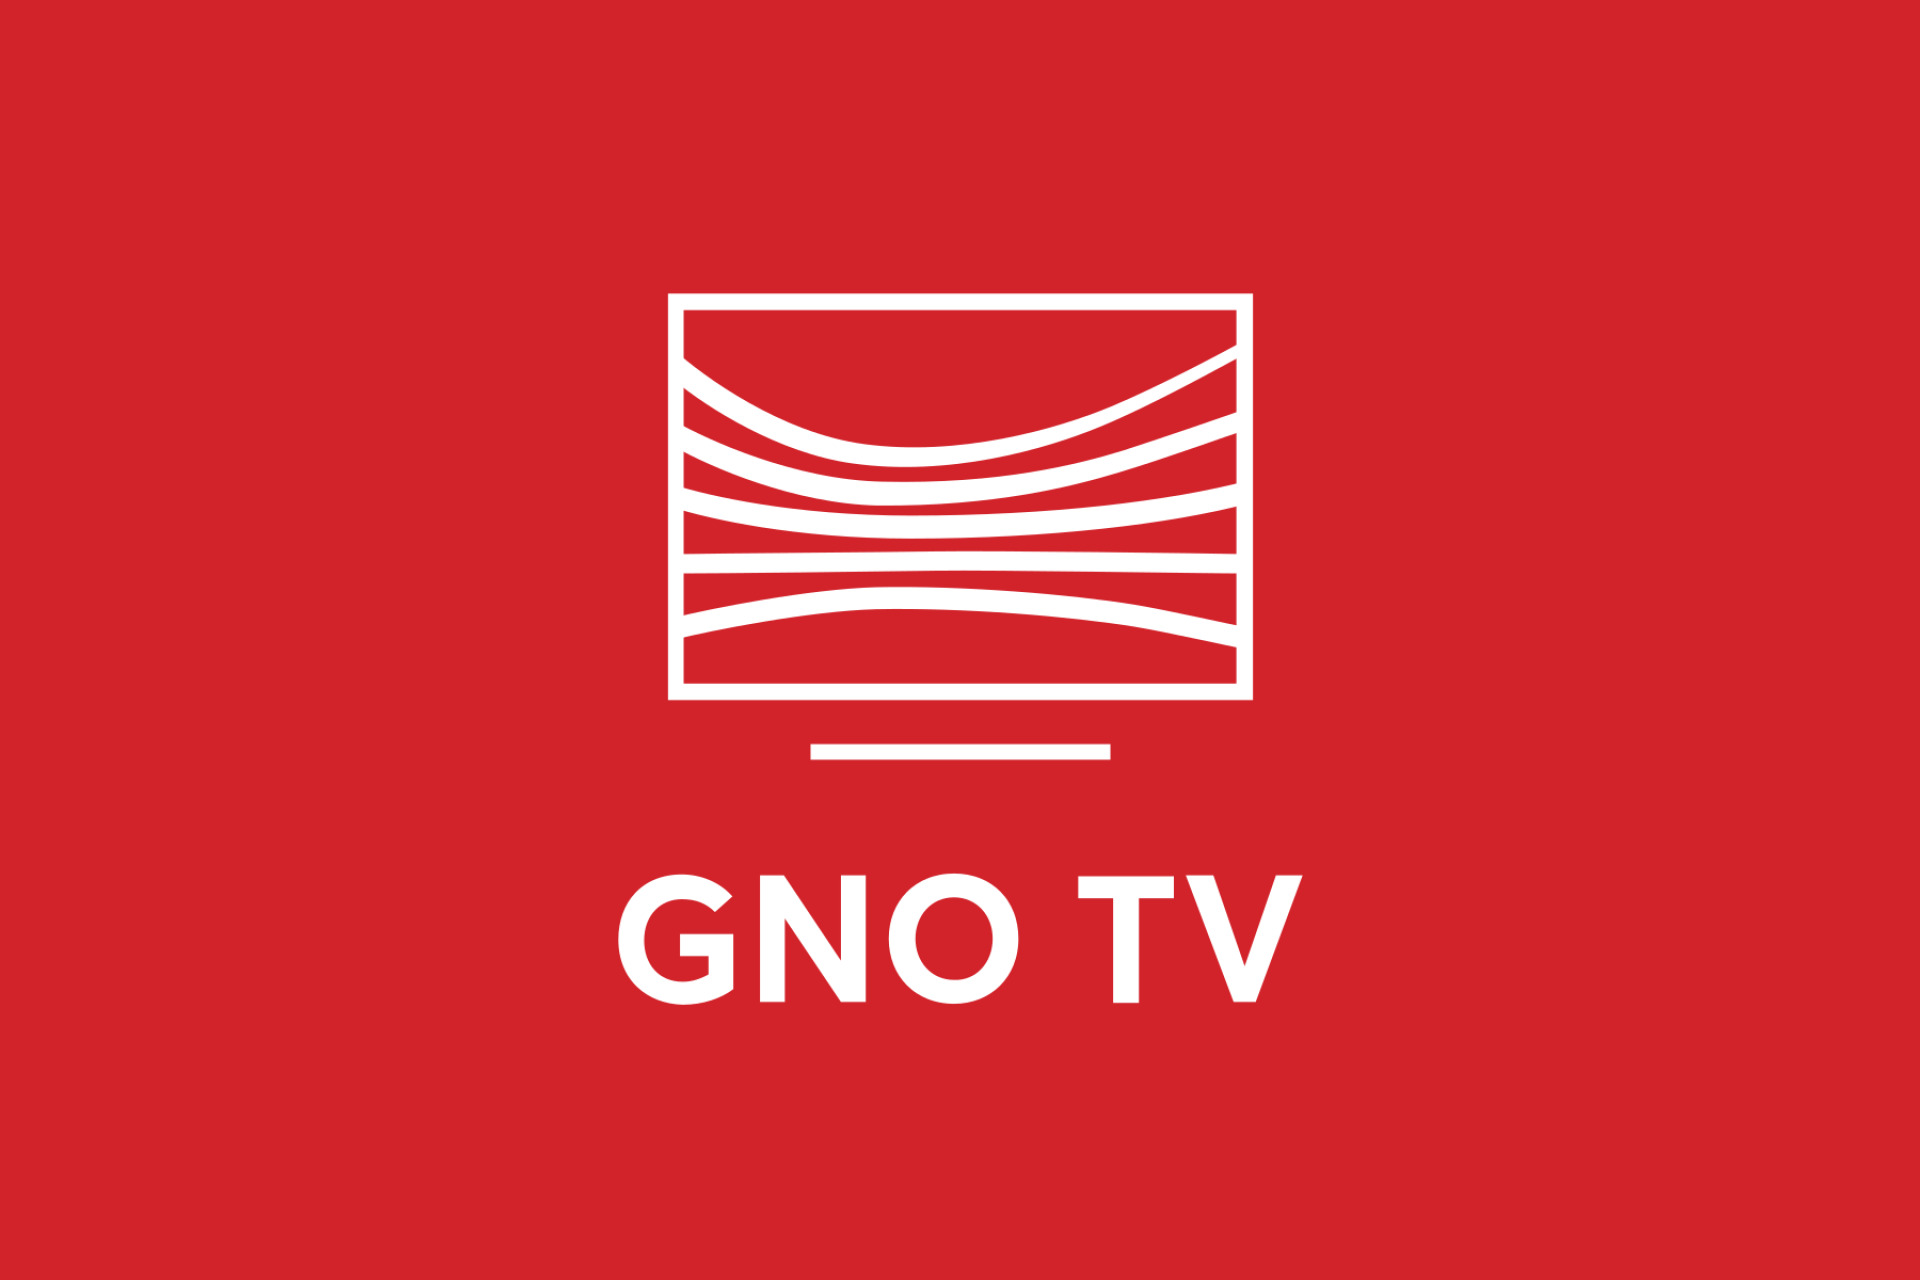 gnotv_3shows